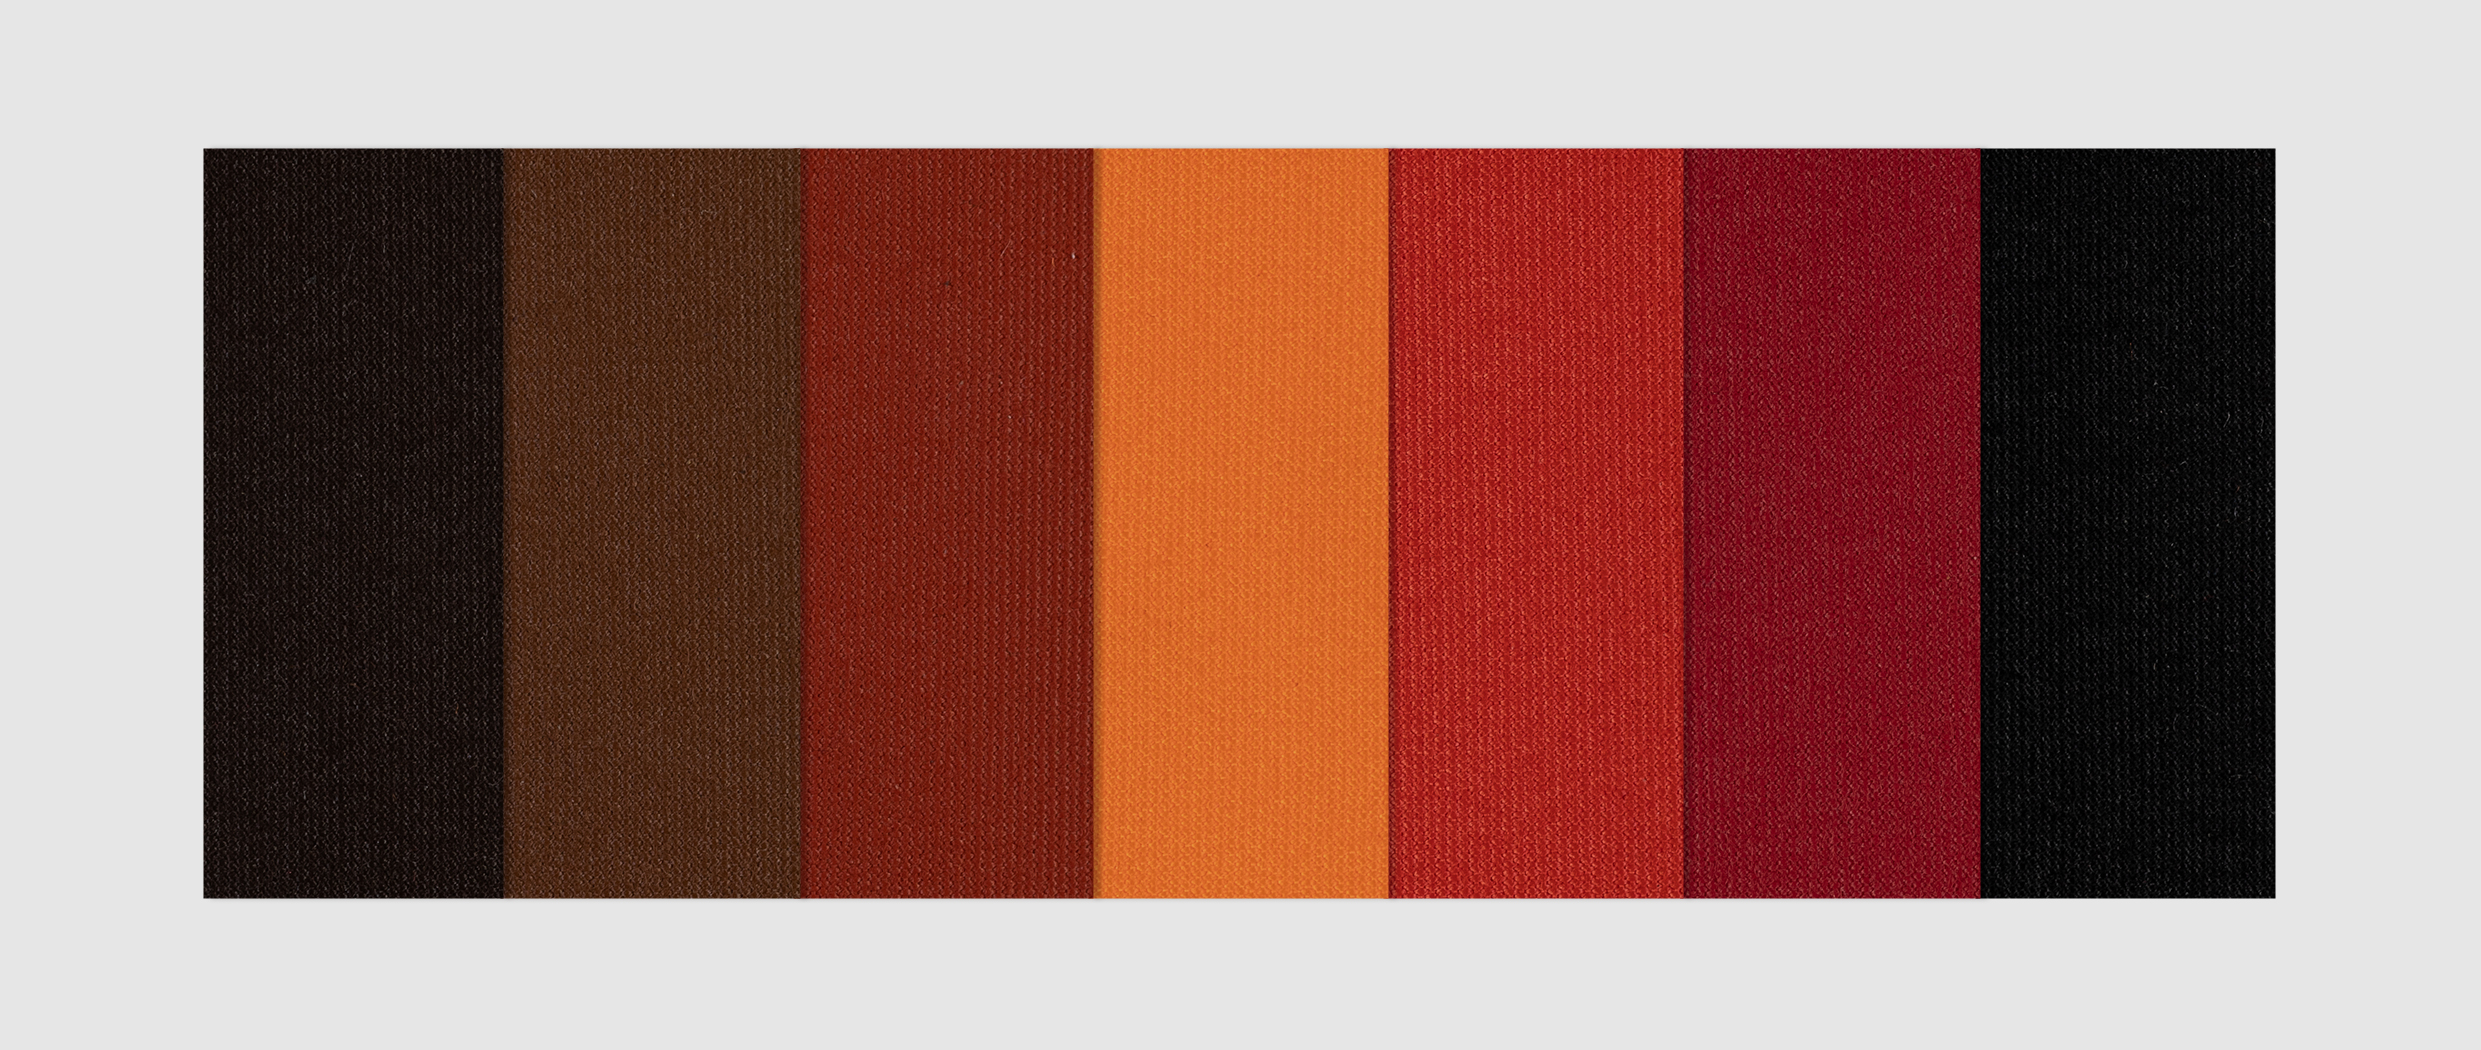 Marine Grade Fabric in cafe, brown, rust, orange, bright red, mid red and black